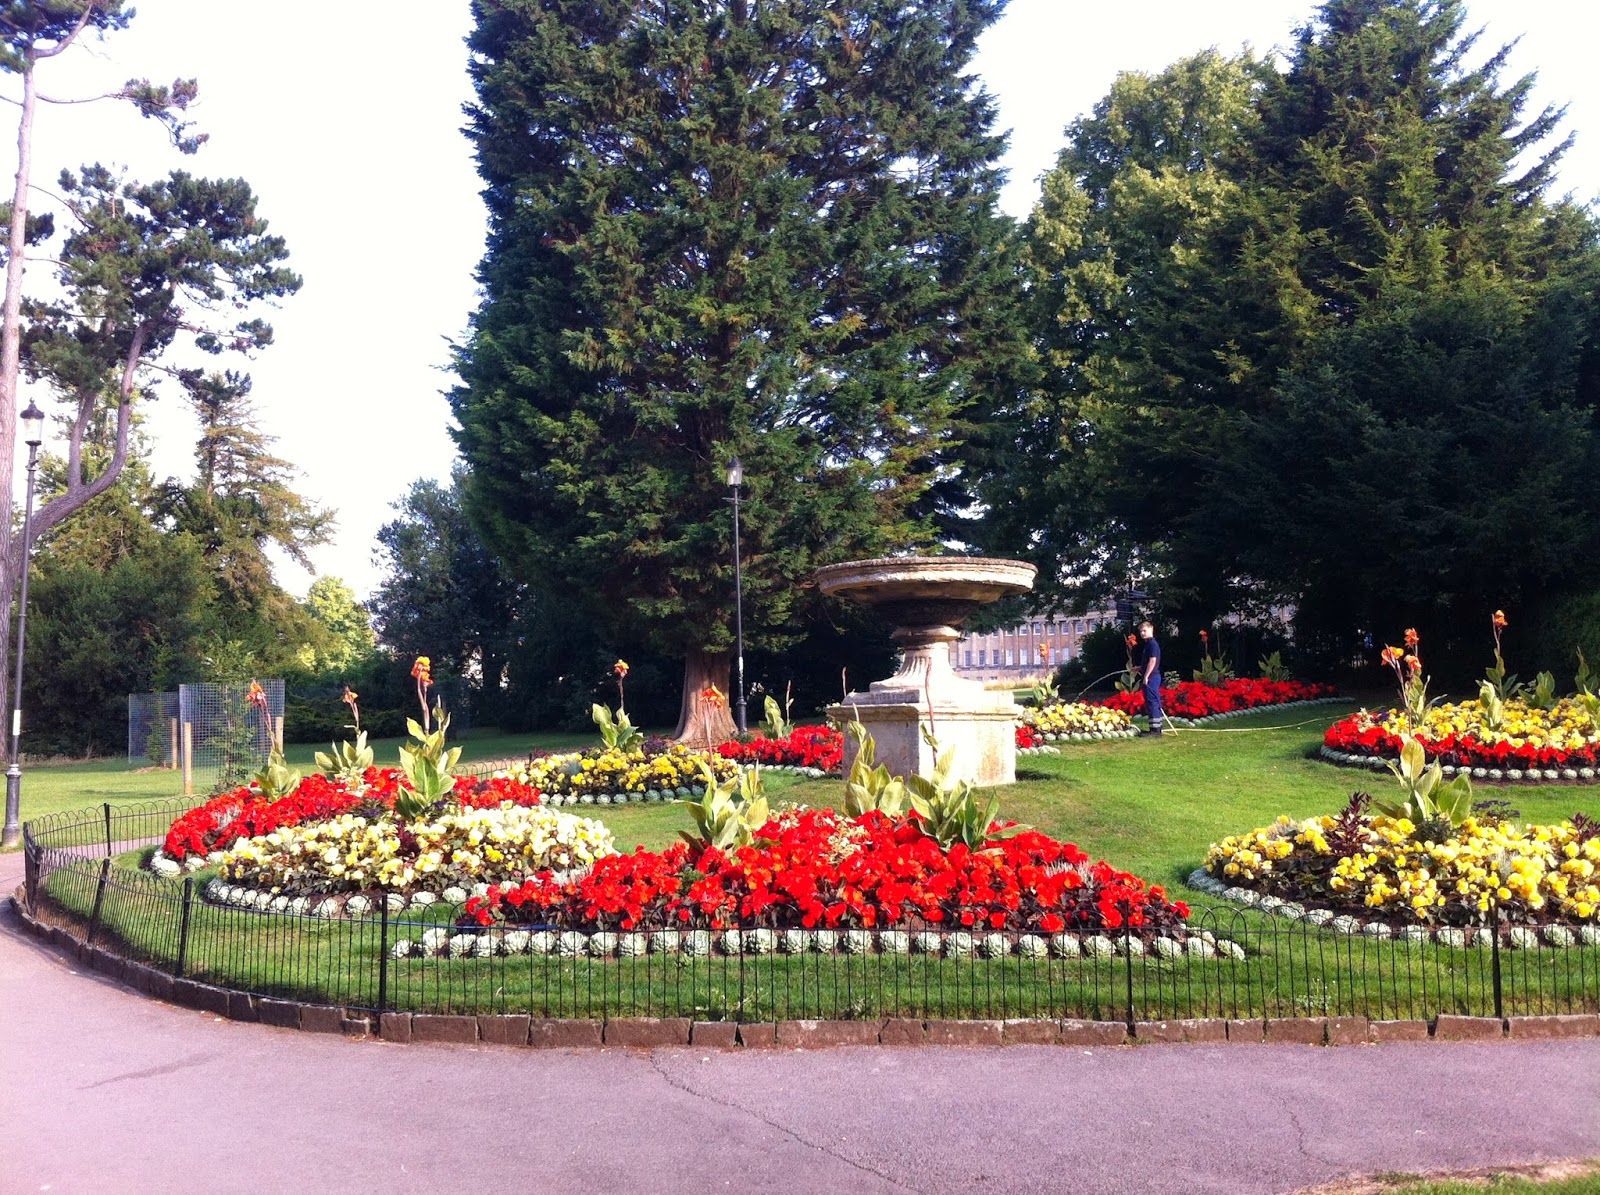 Floral display and gardener, Royal Victoria Park, Bath